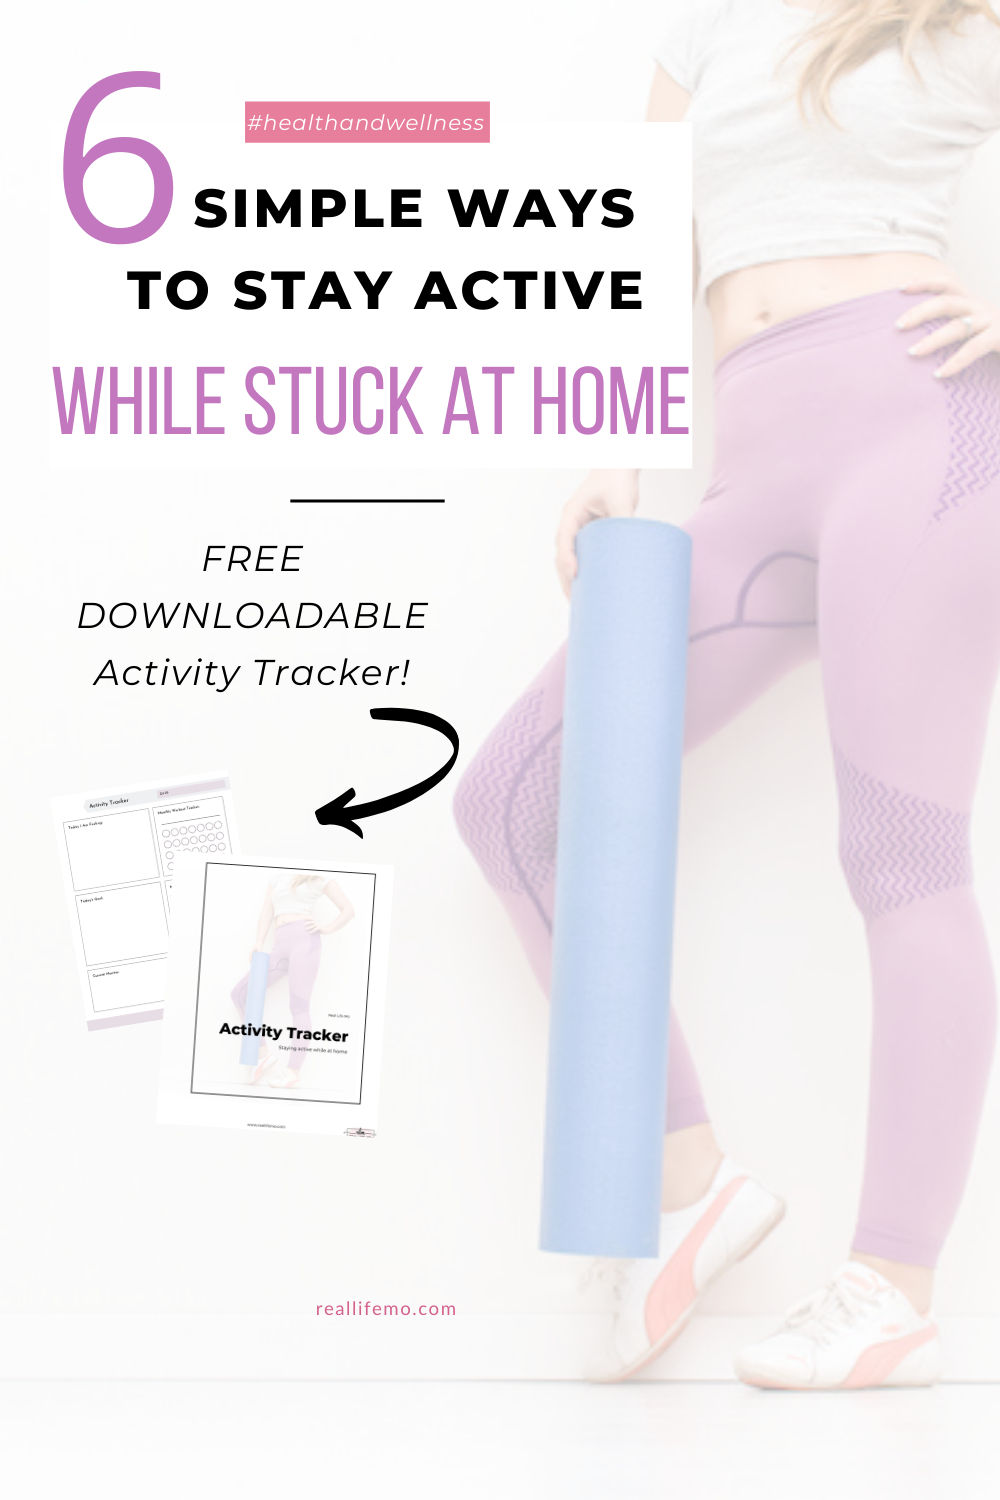 FREE ACTIVITY TRACKER! Finding your activity level dropping since spending much more time at home? Here are 6 simple ways to stay active while being stuck at home. Download your FREE activity tracker to help! #stayingactive #healthyliving #simpleworkouts #move #health #wellness